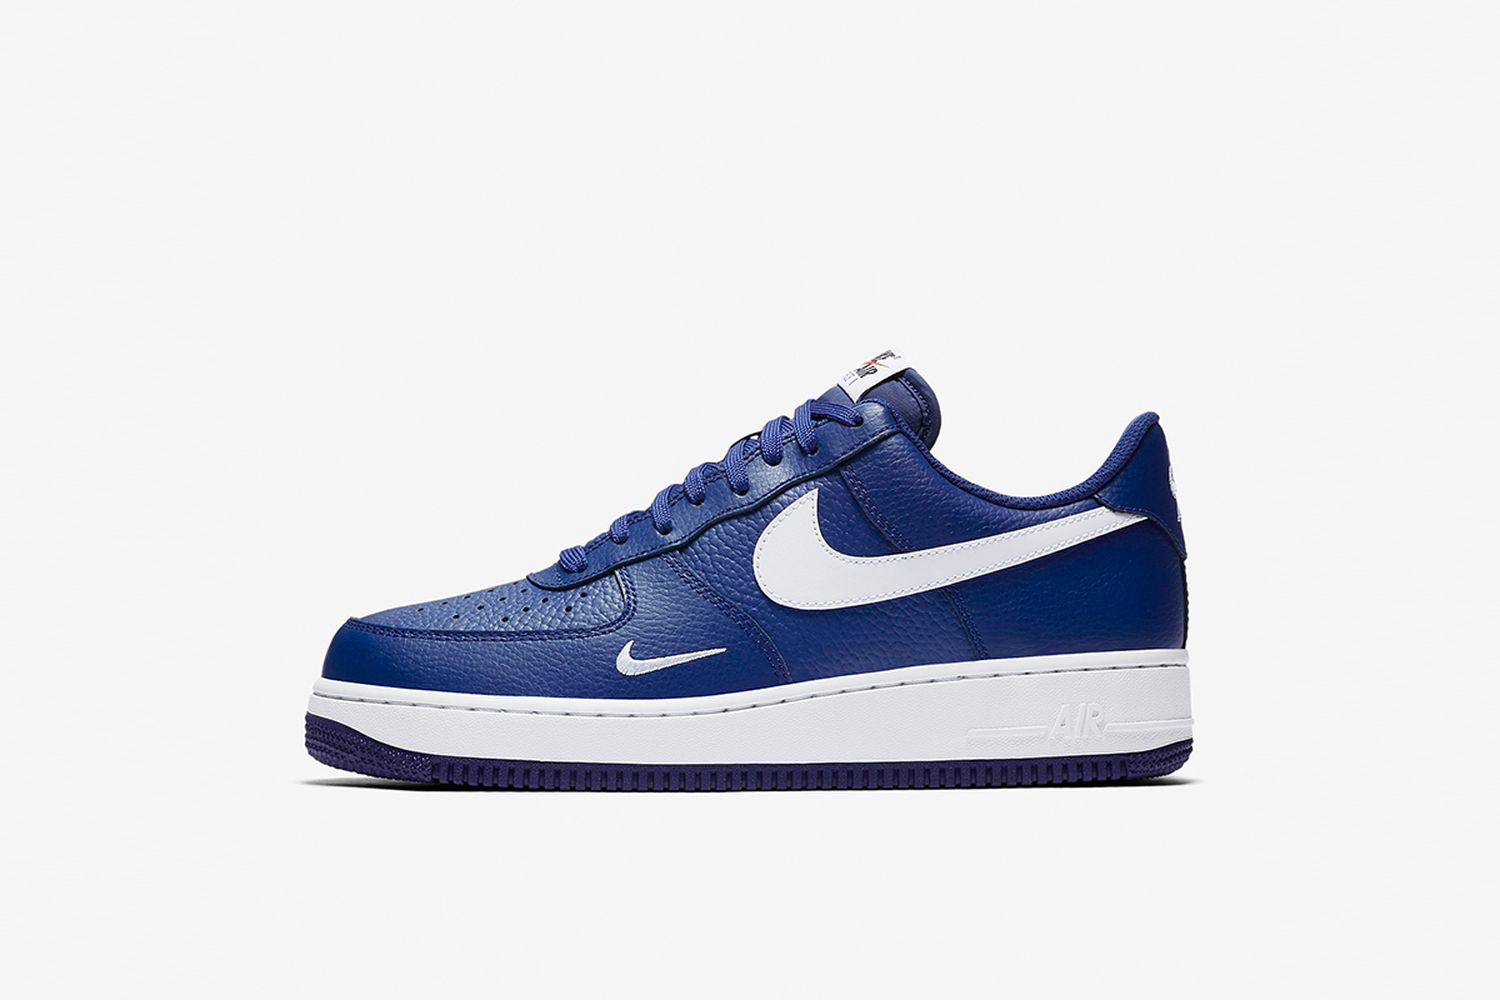 Air Froce 1 Low '07